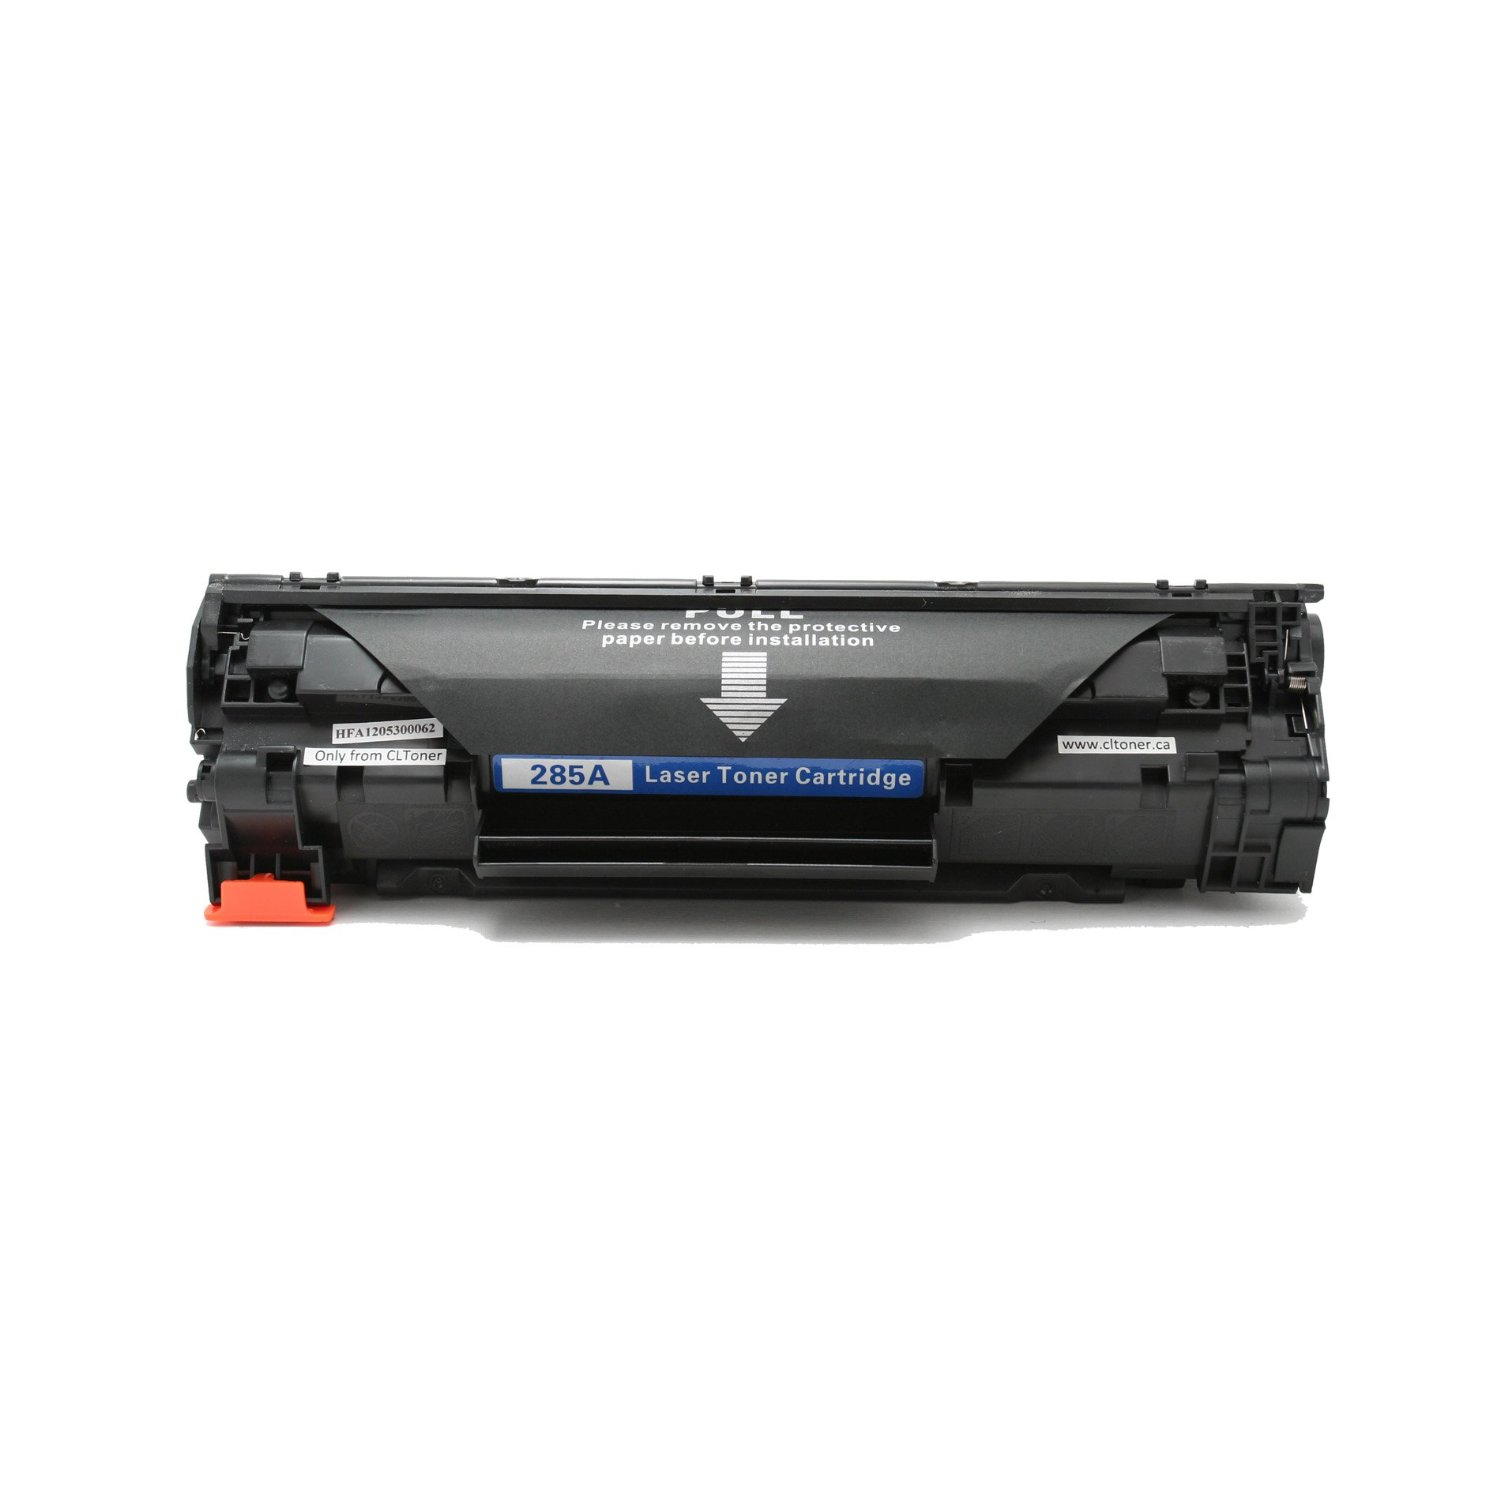 HP CE285A: New Compatible HP CE285A Toner Cartridge for HP LaserJet Pro P1100 P1102 P1102w P1415nw